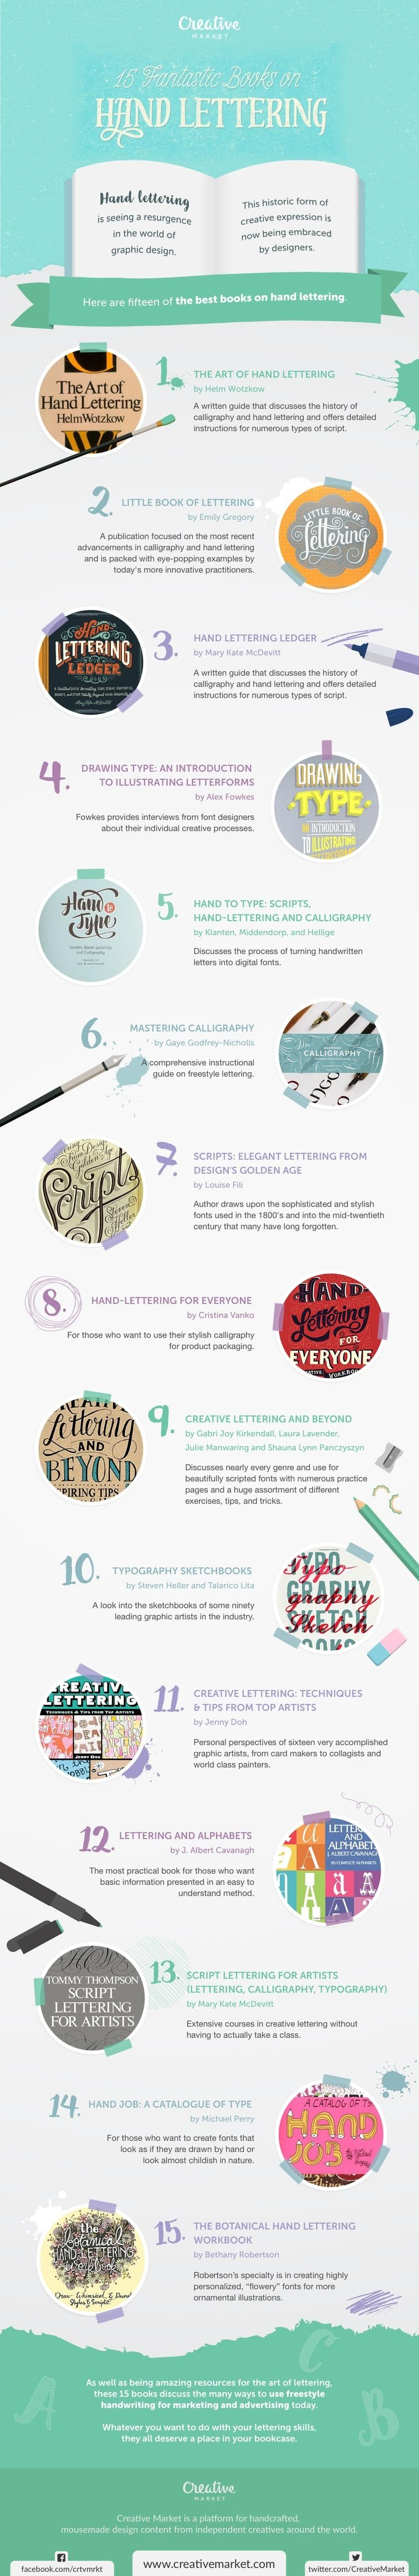 15 Fantastic Books On Hand Lettering #Infographic